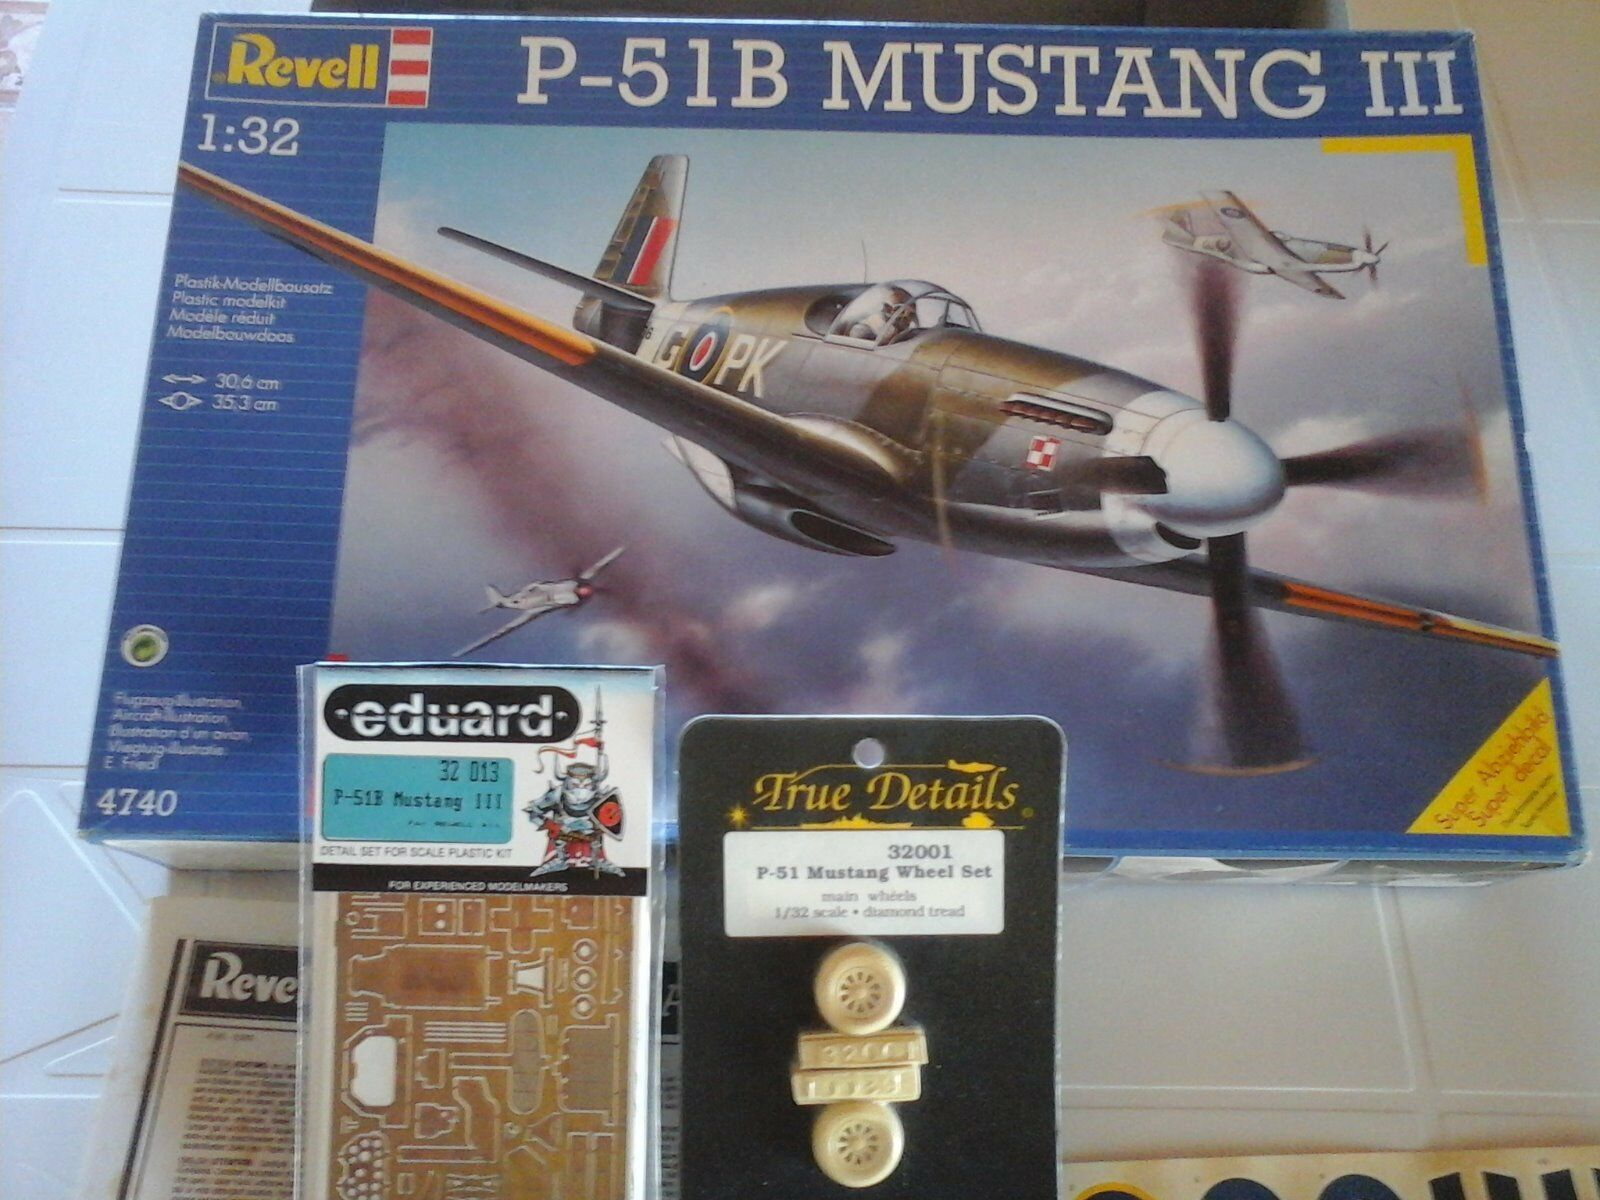 P51 B MUSTANG III R.A.F. 1 32 SCALE REVELL MODEL+PHOTOETCHED +RESIN WHEEL SET